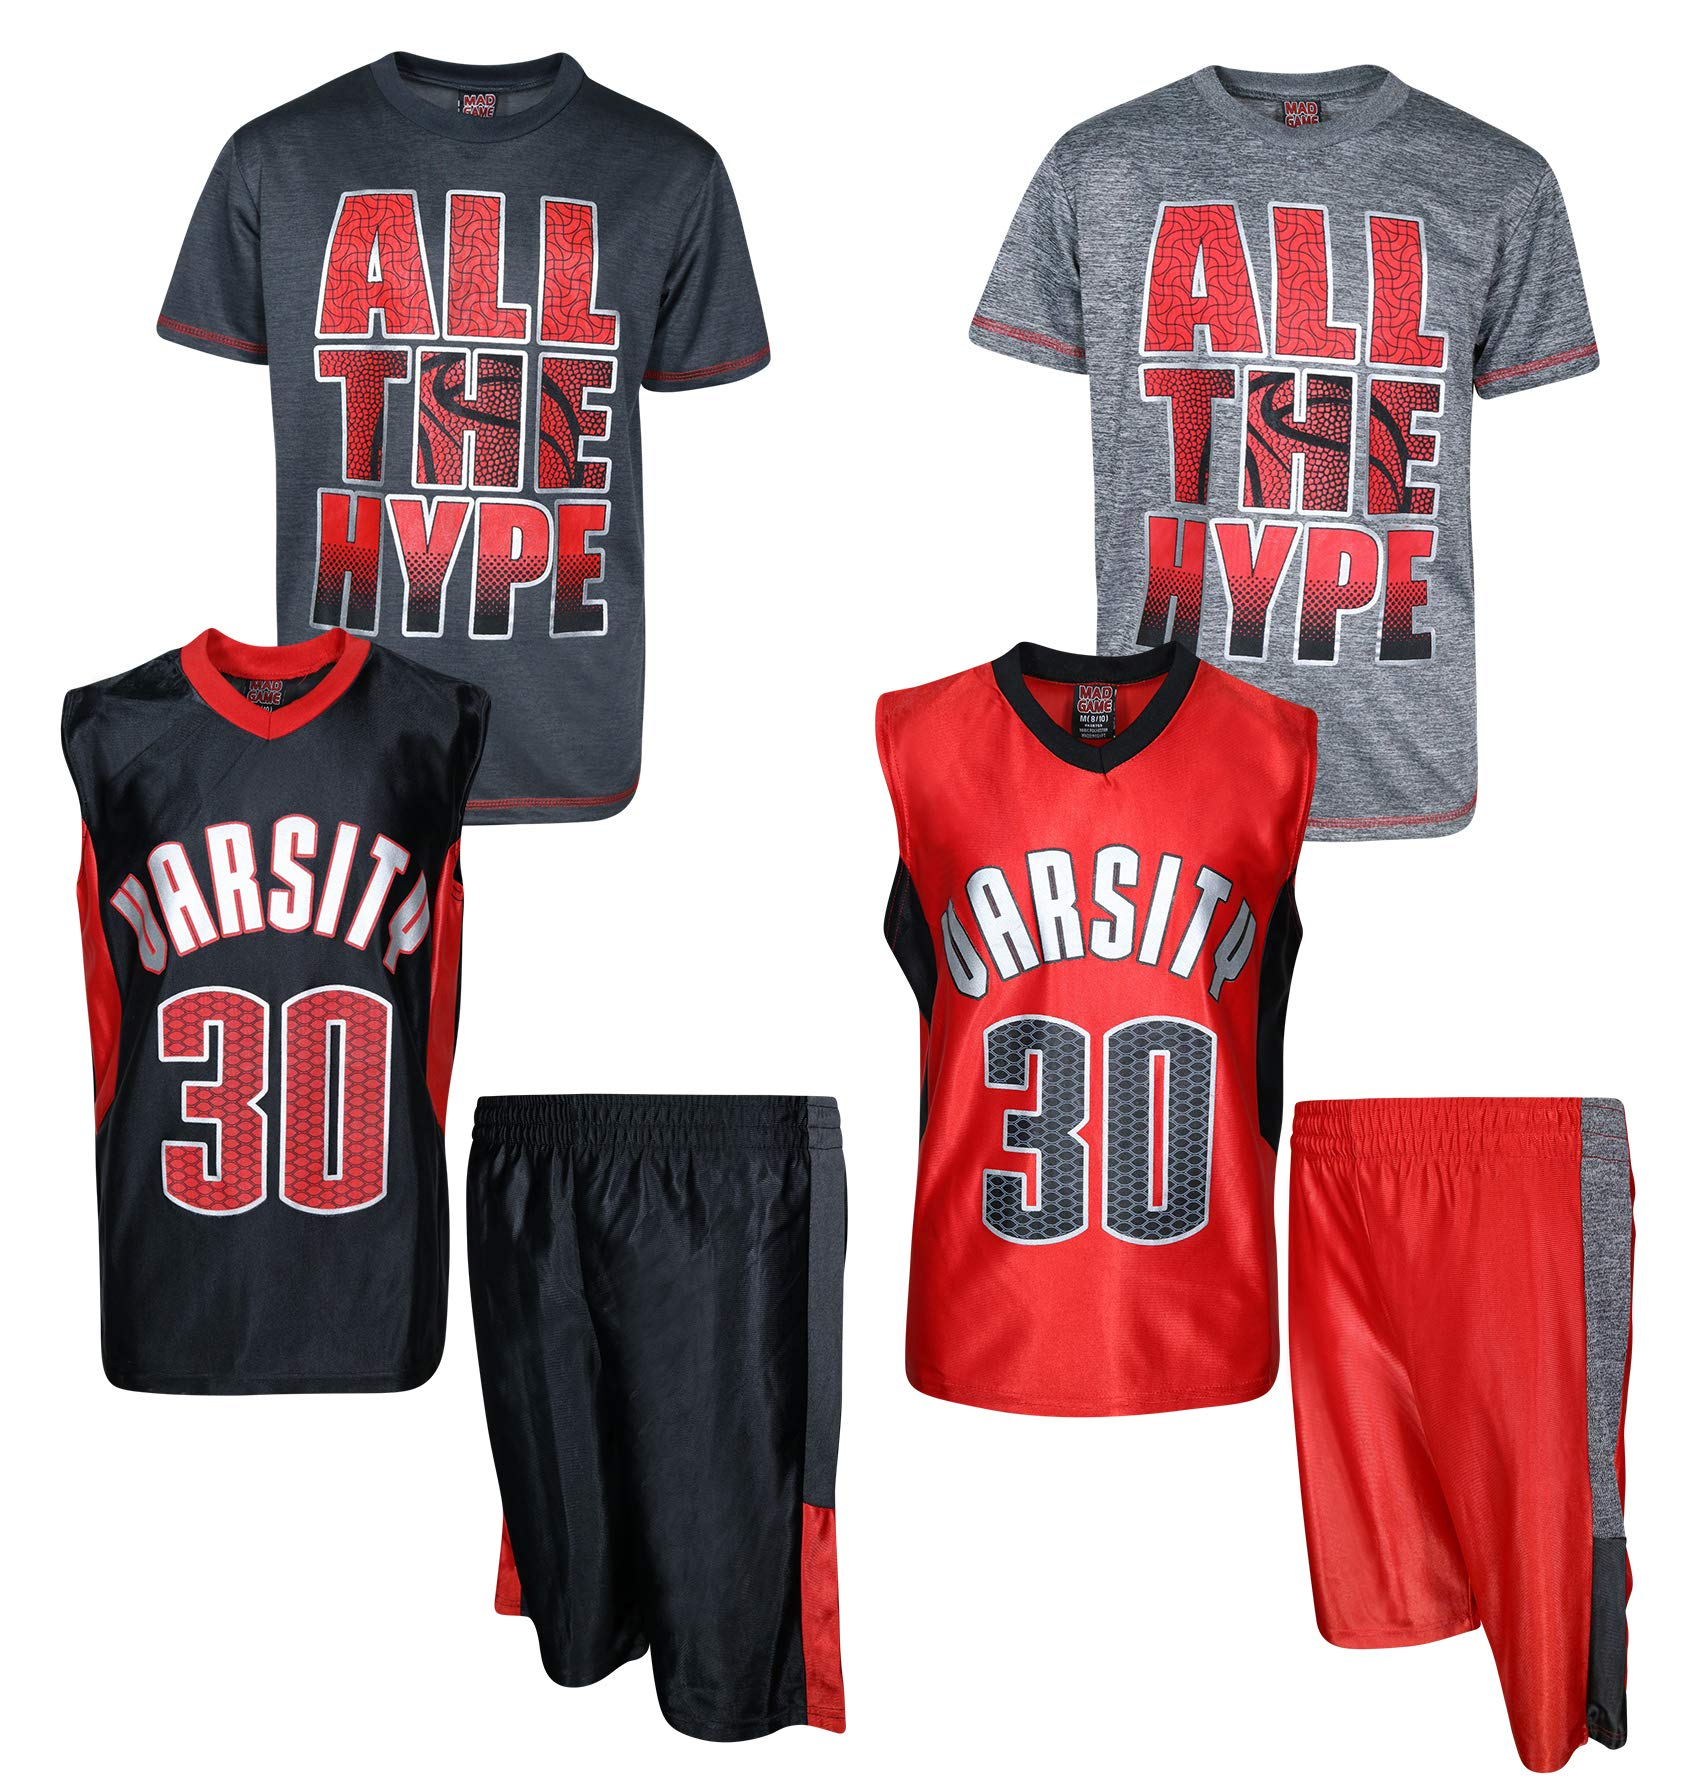 Mad Game Boys' 6-Piece Performance Basketball Shirt and Short Set (2 Full Sets), All The Hype, Size 8/10'